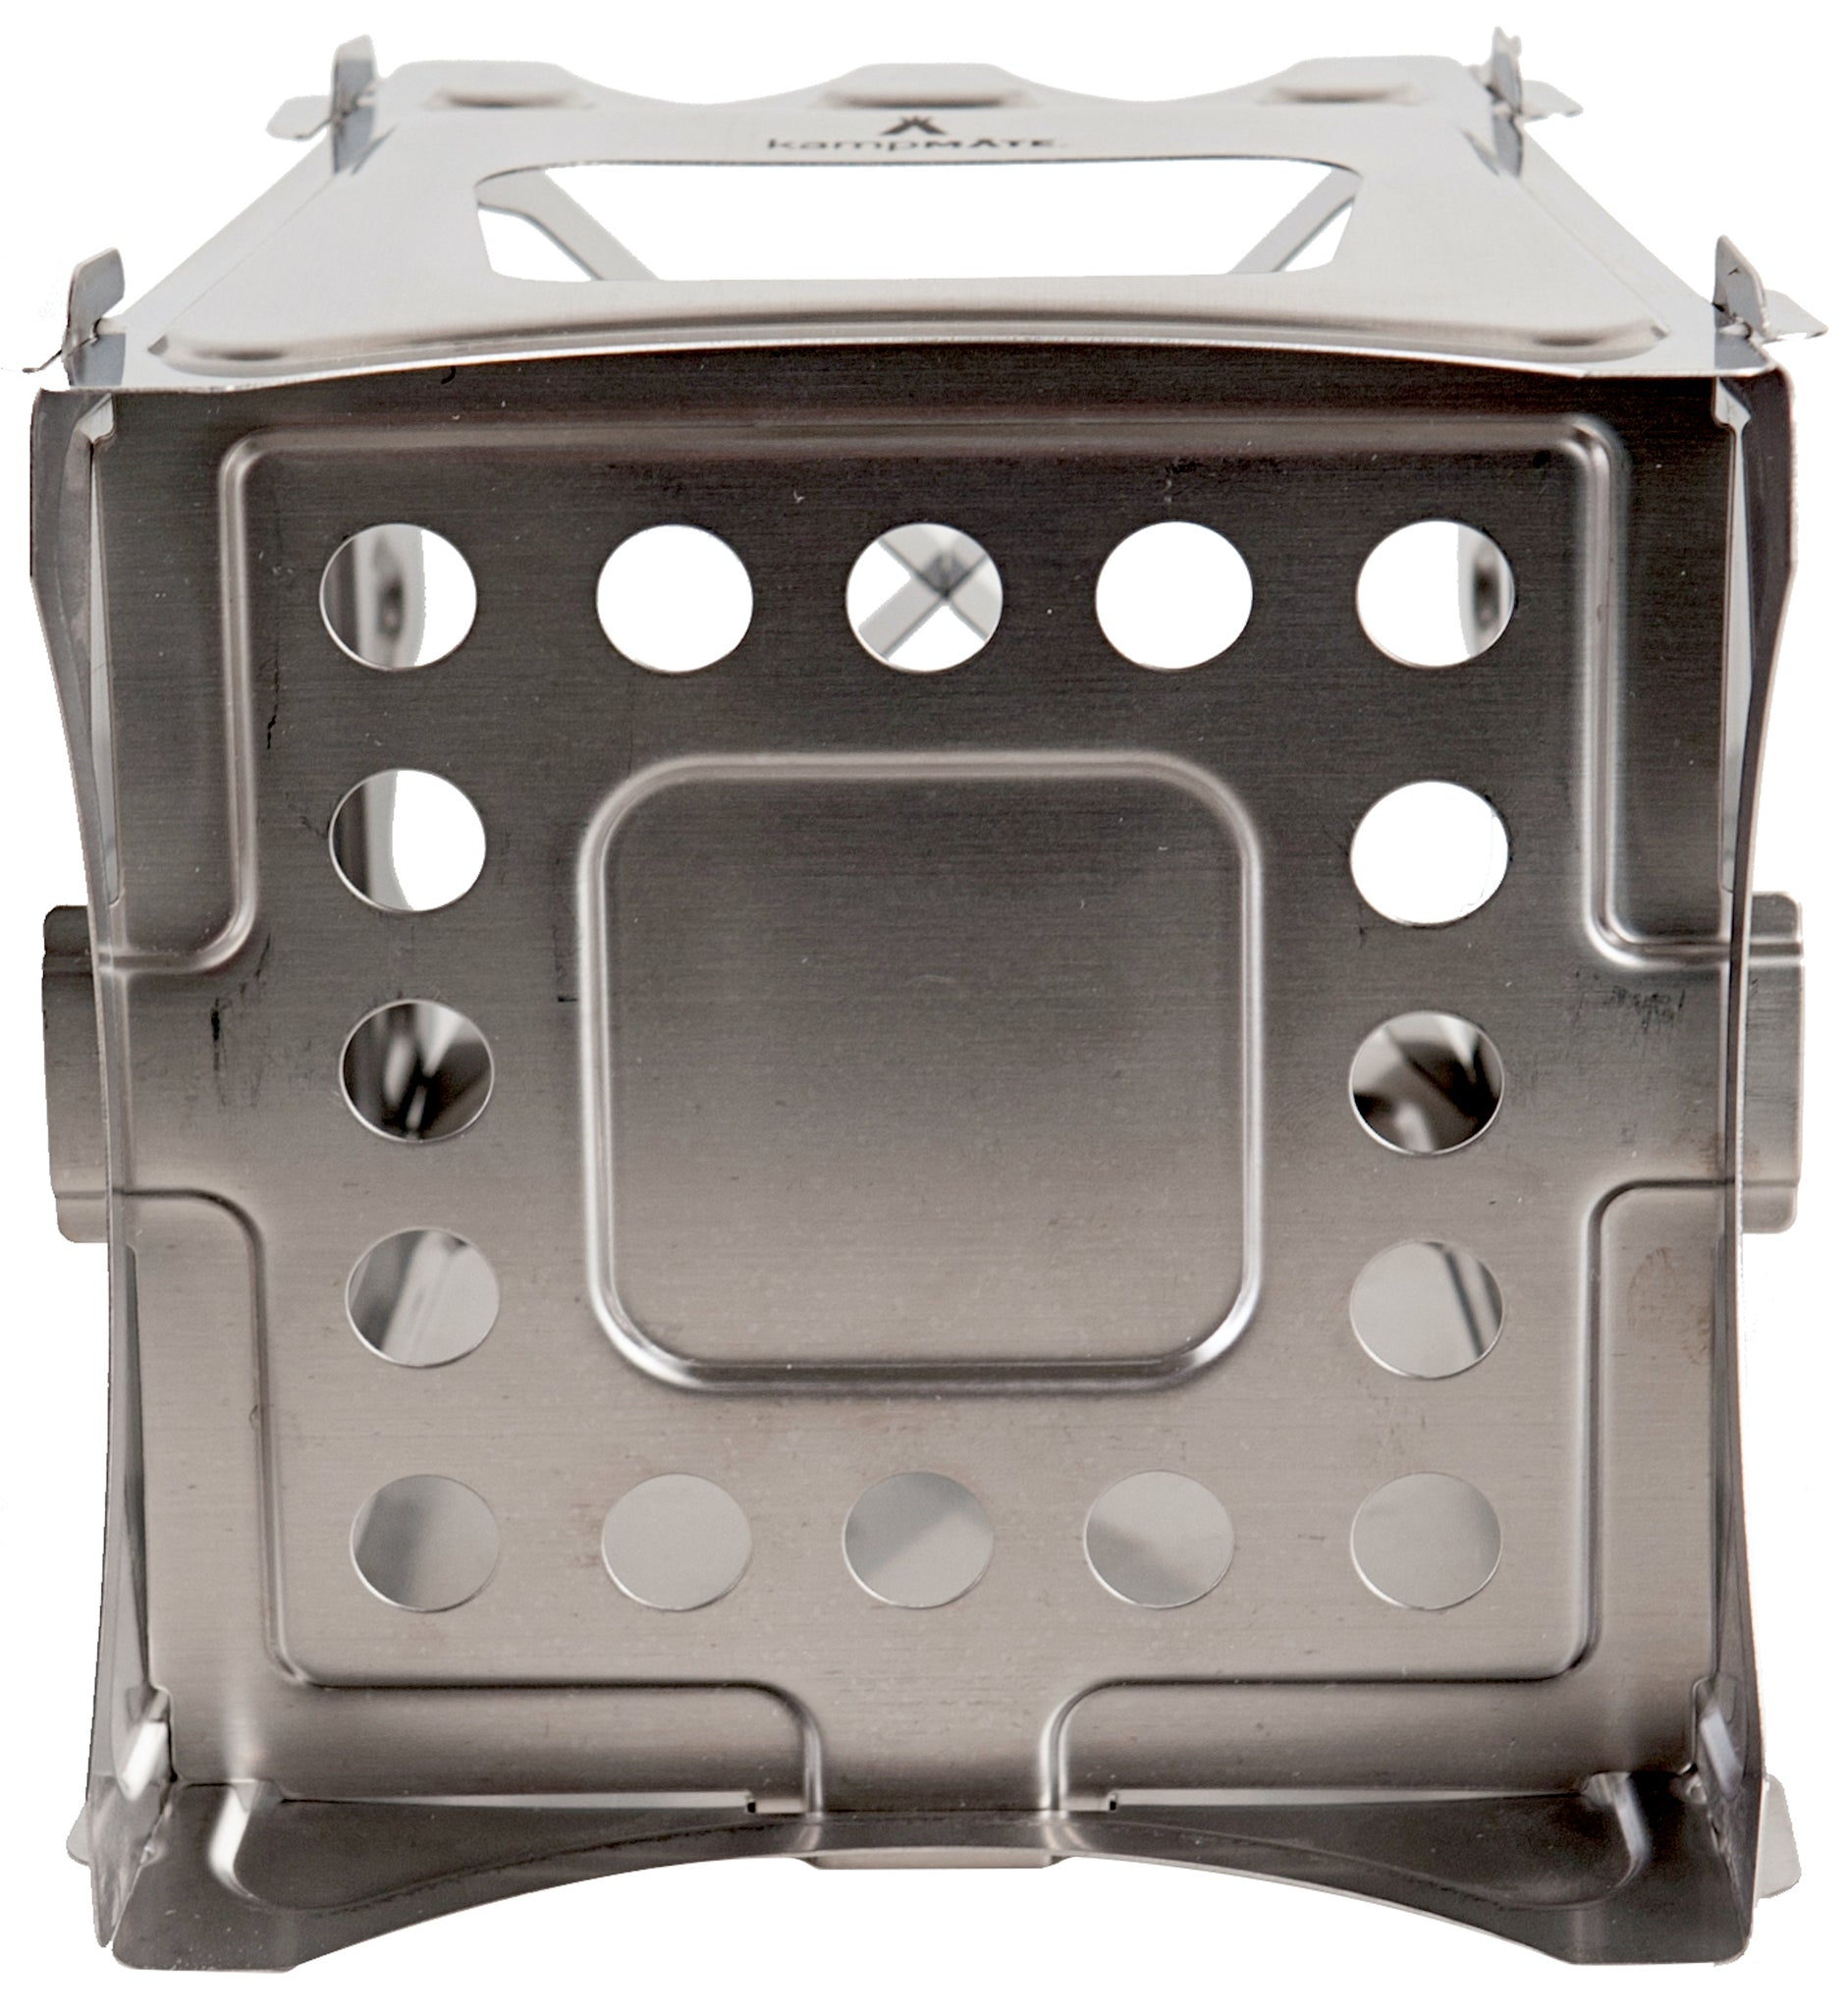 kampMATE WoodFlame Ultra Lightweight Portable Wood Burning Camping Stove Backpacking Stove Perfect for Survival Packs /& Emergency Preparedness Stainless Steel with Nylon Carry Case